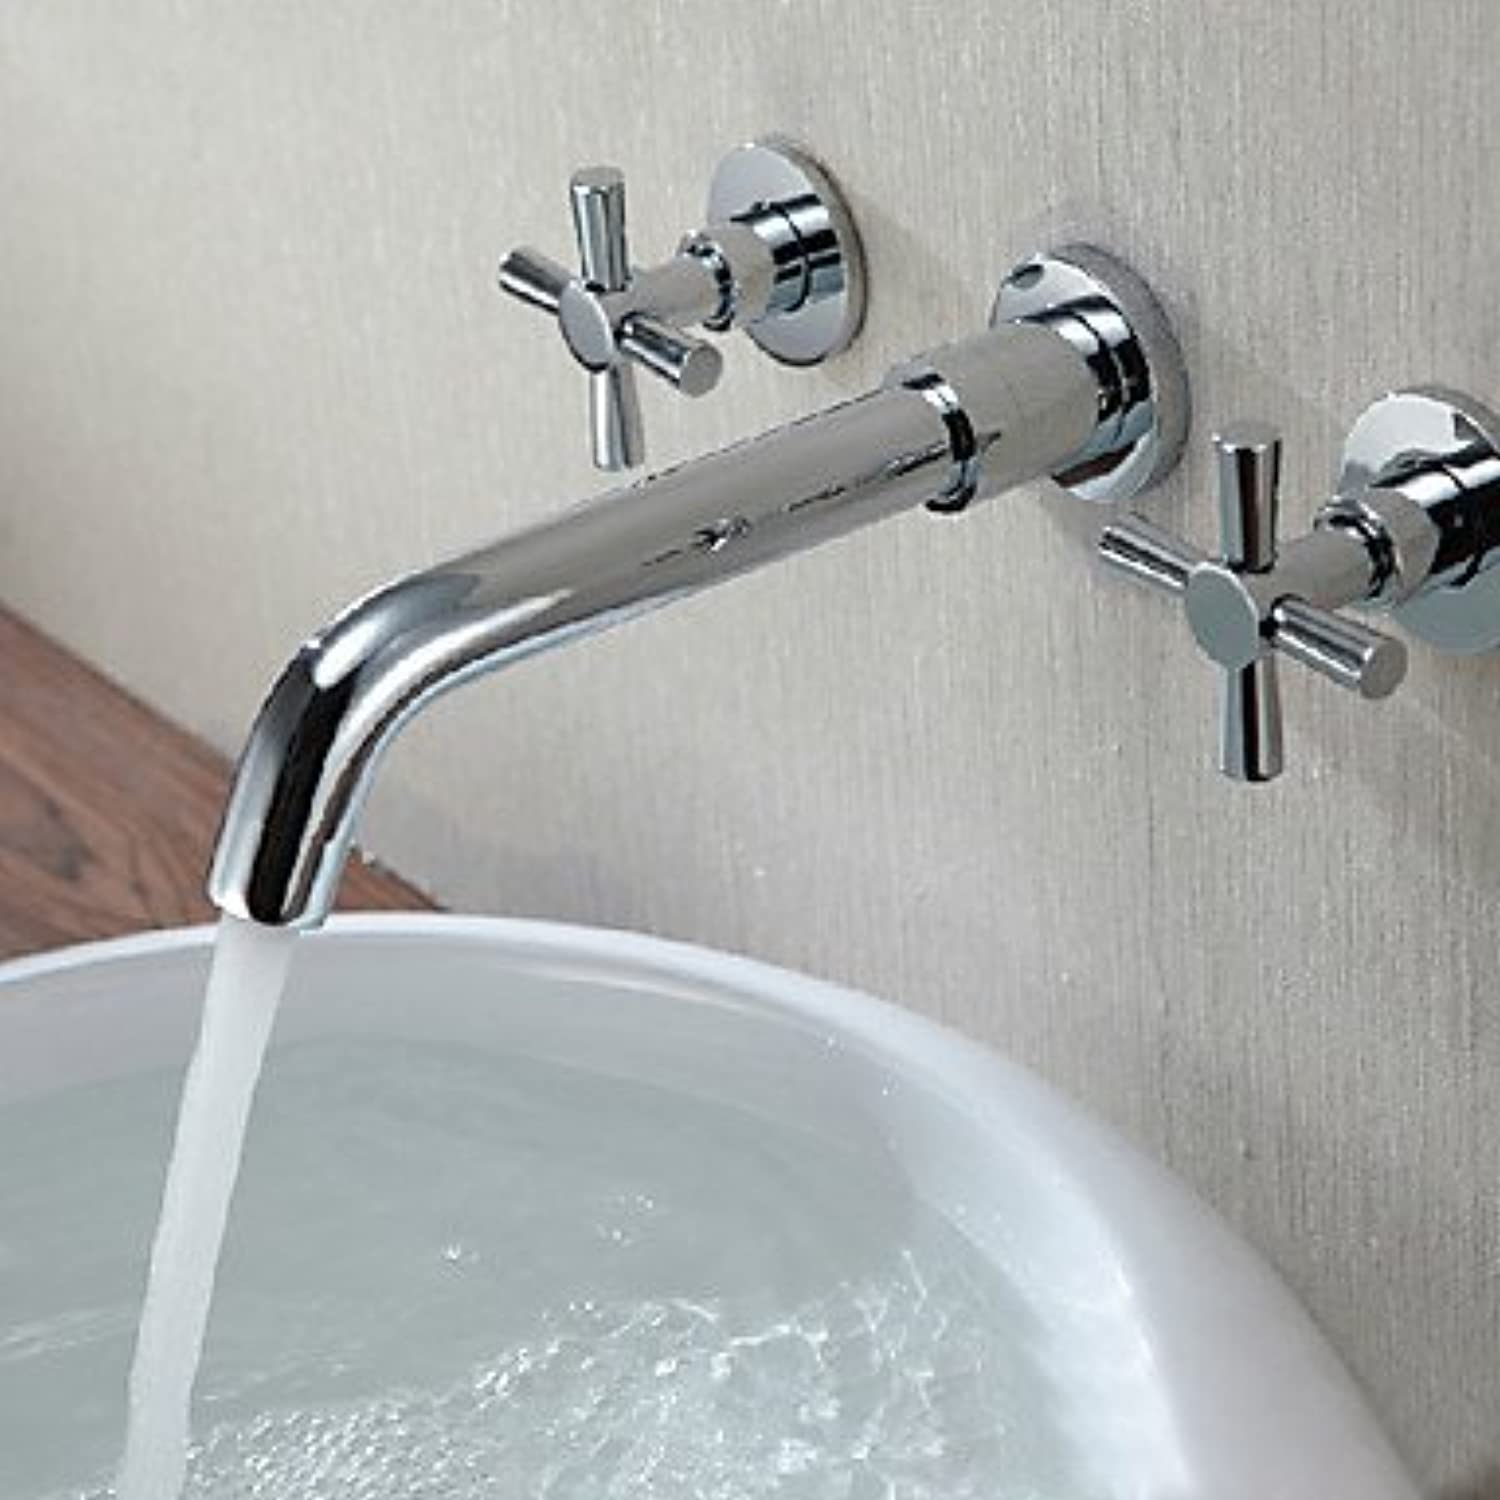 SQL Contemporary Wall Mounted with Ceramic Valve Two Handles Three Holes for Chrome Bathroom Sink Faucet